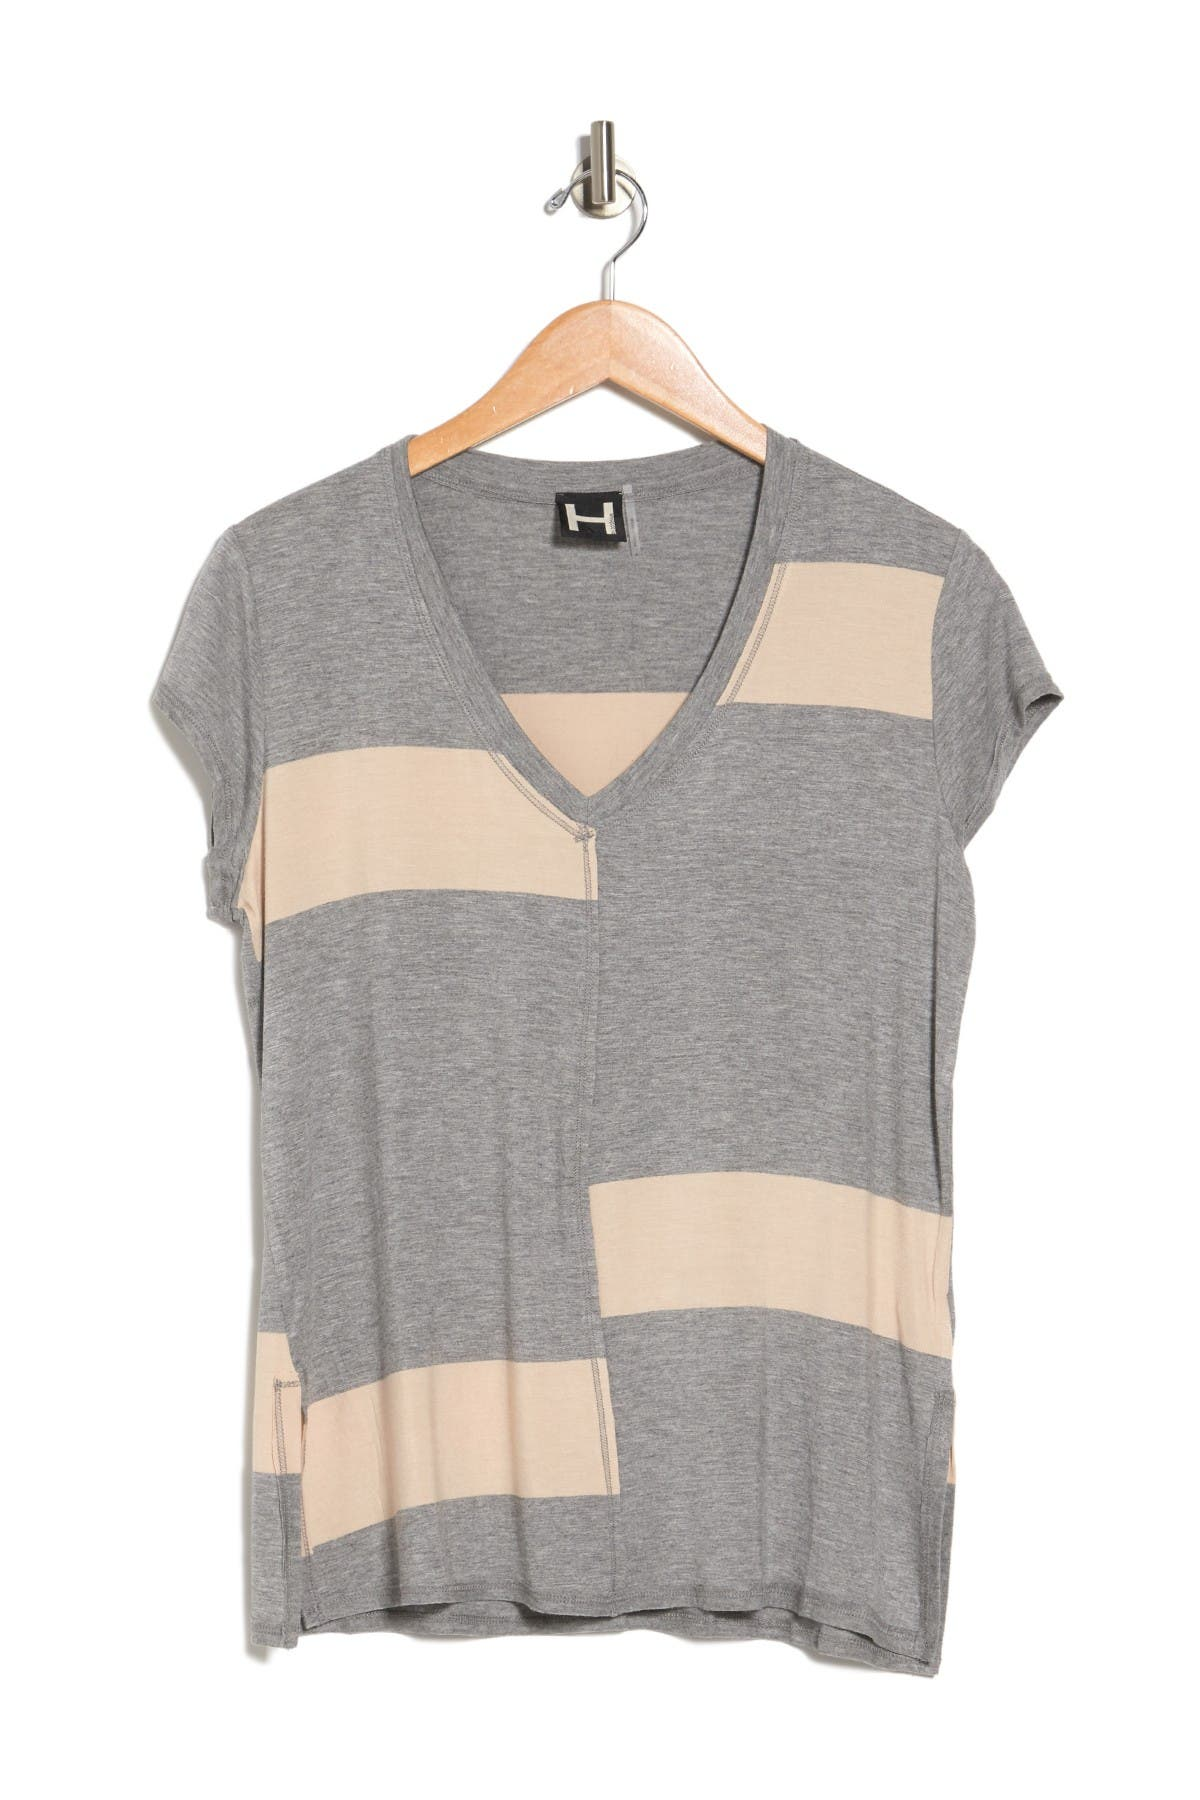 Image of H By Bordeaux Wide Striped V-Neck Shirt